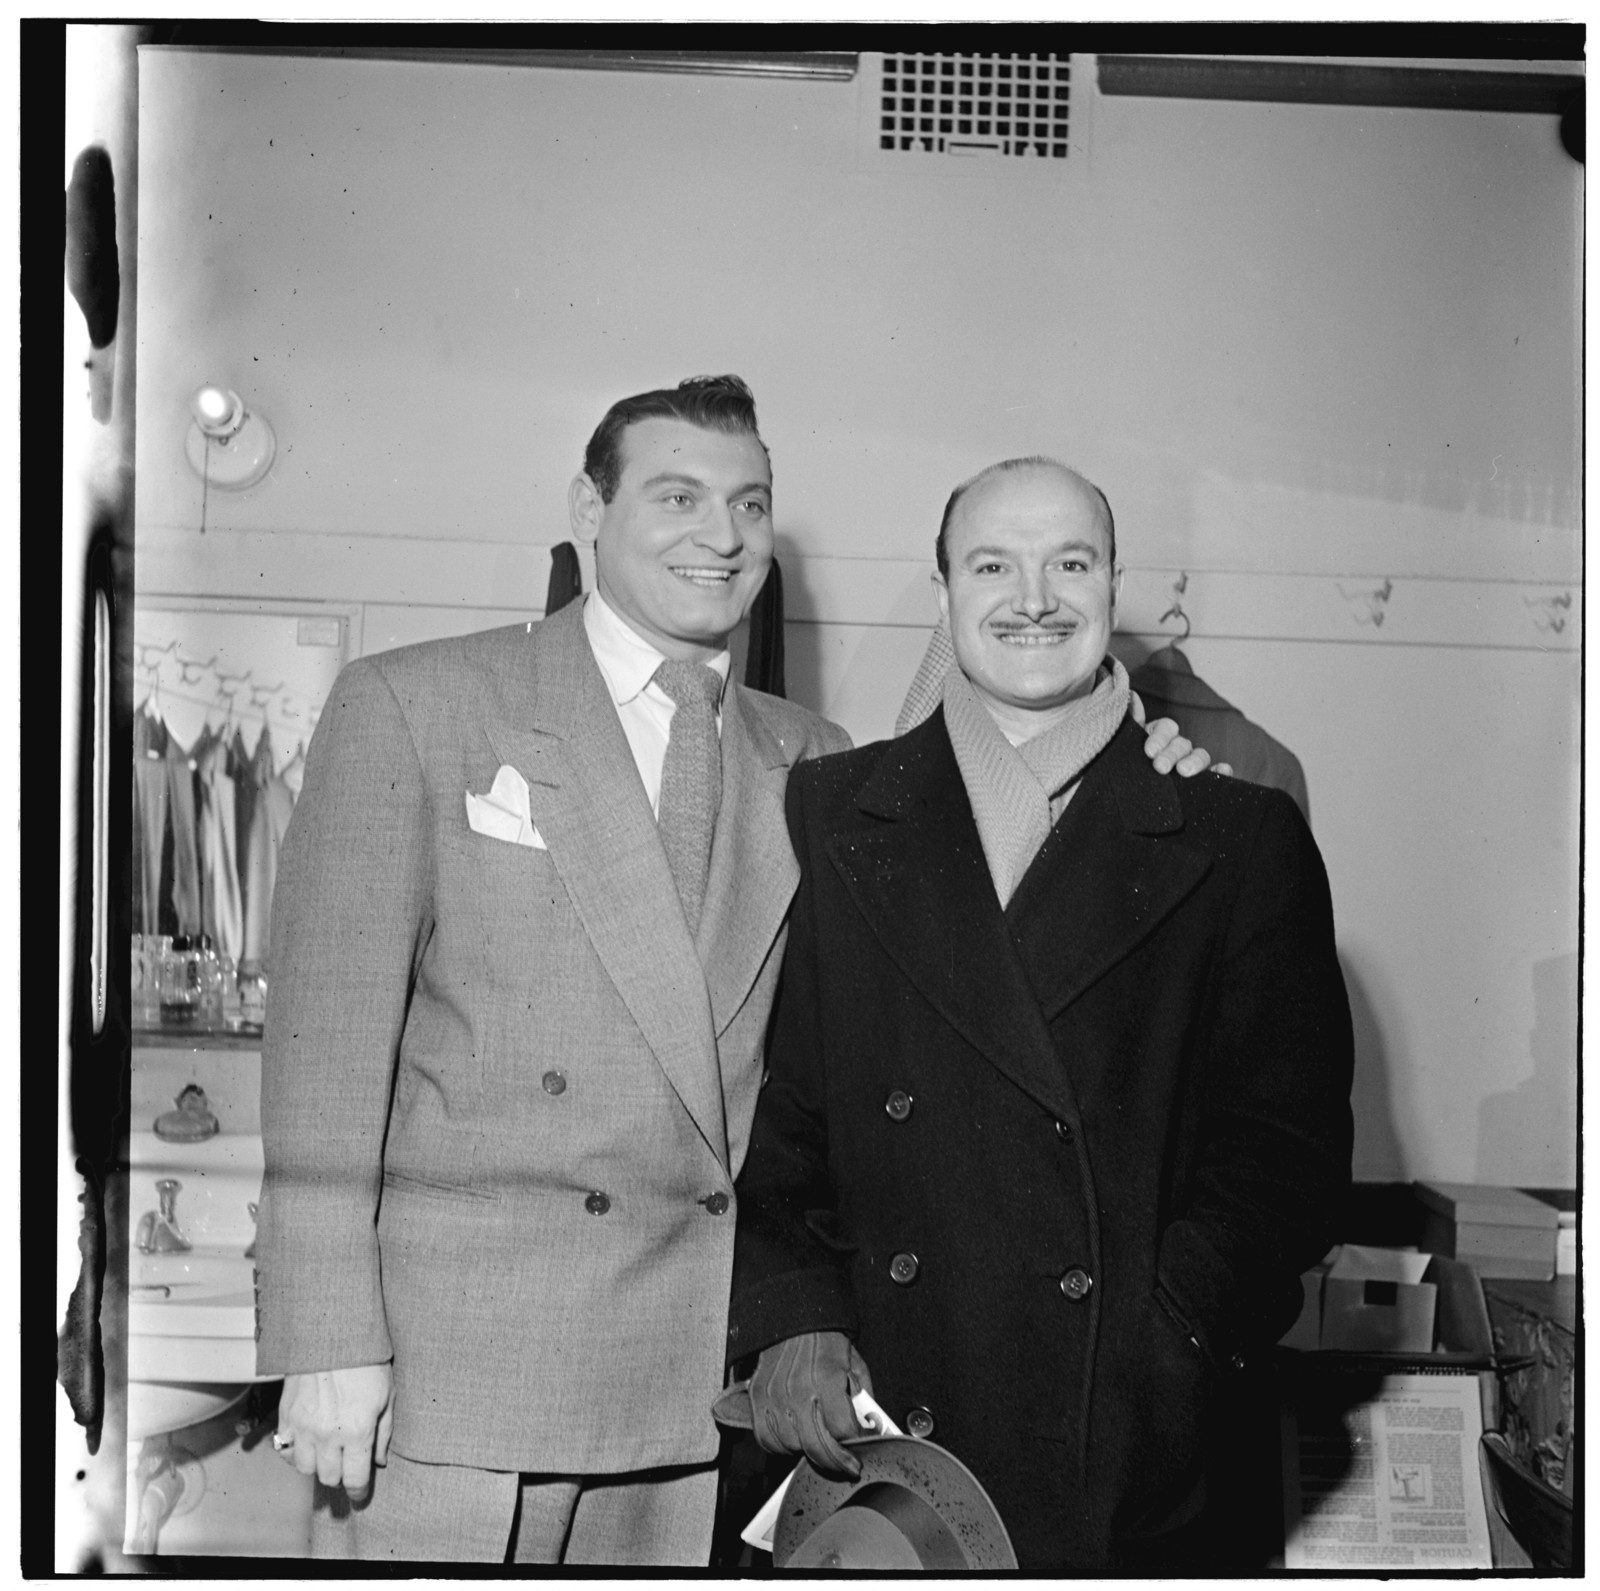 [Portrait of Bud Freeman and Frankie Laine, New York, N.Y.(?), between 1938 and 1948]